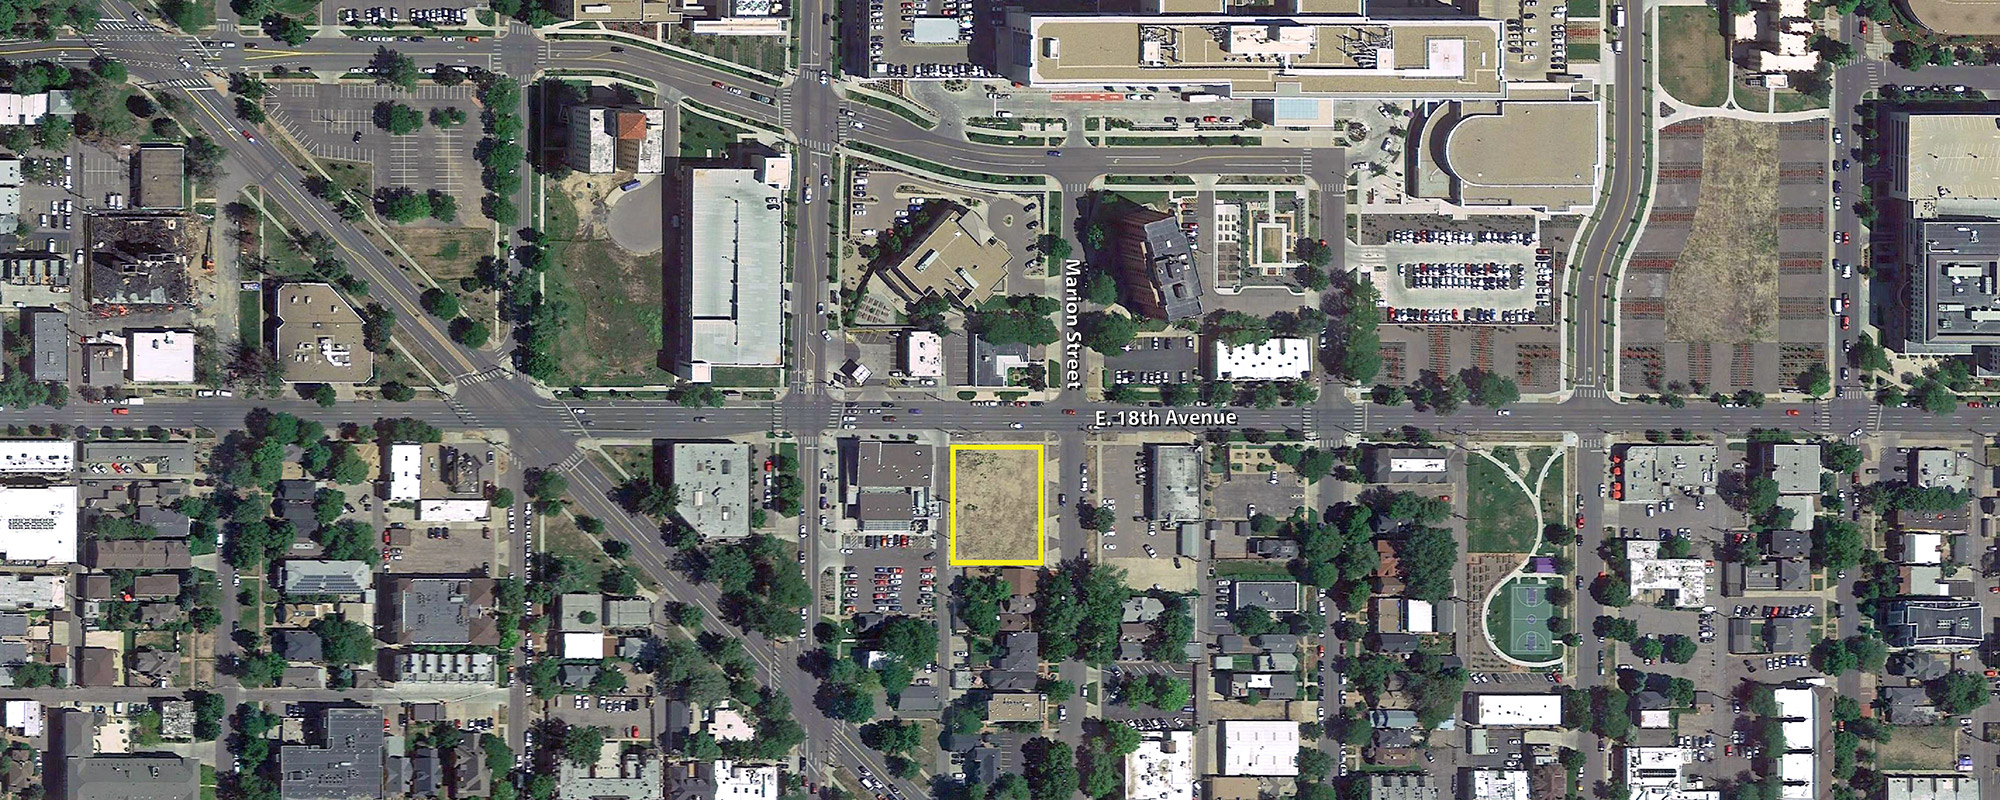 Broadstone Uptown West site location, base aerial courtesy of Google Earth